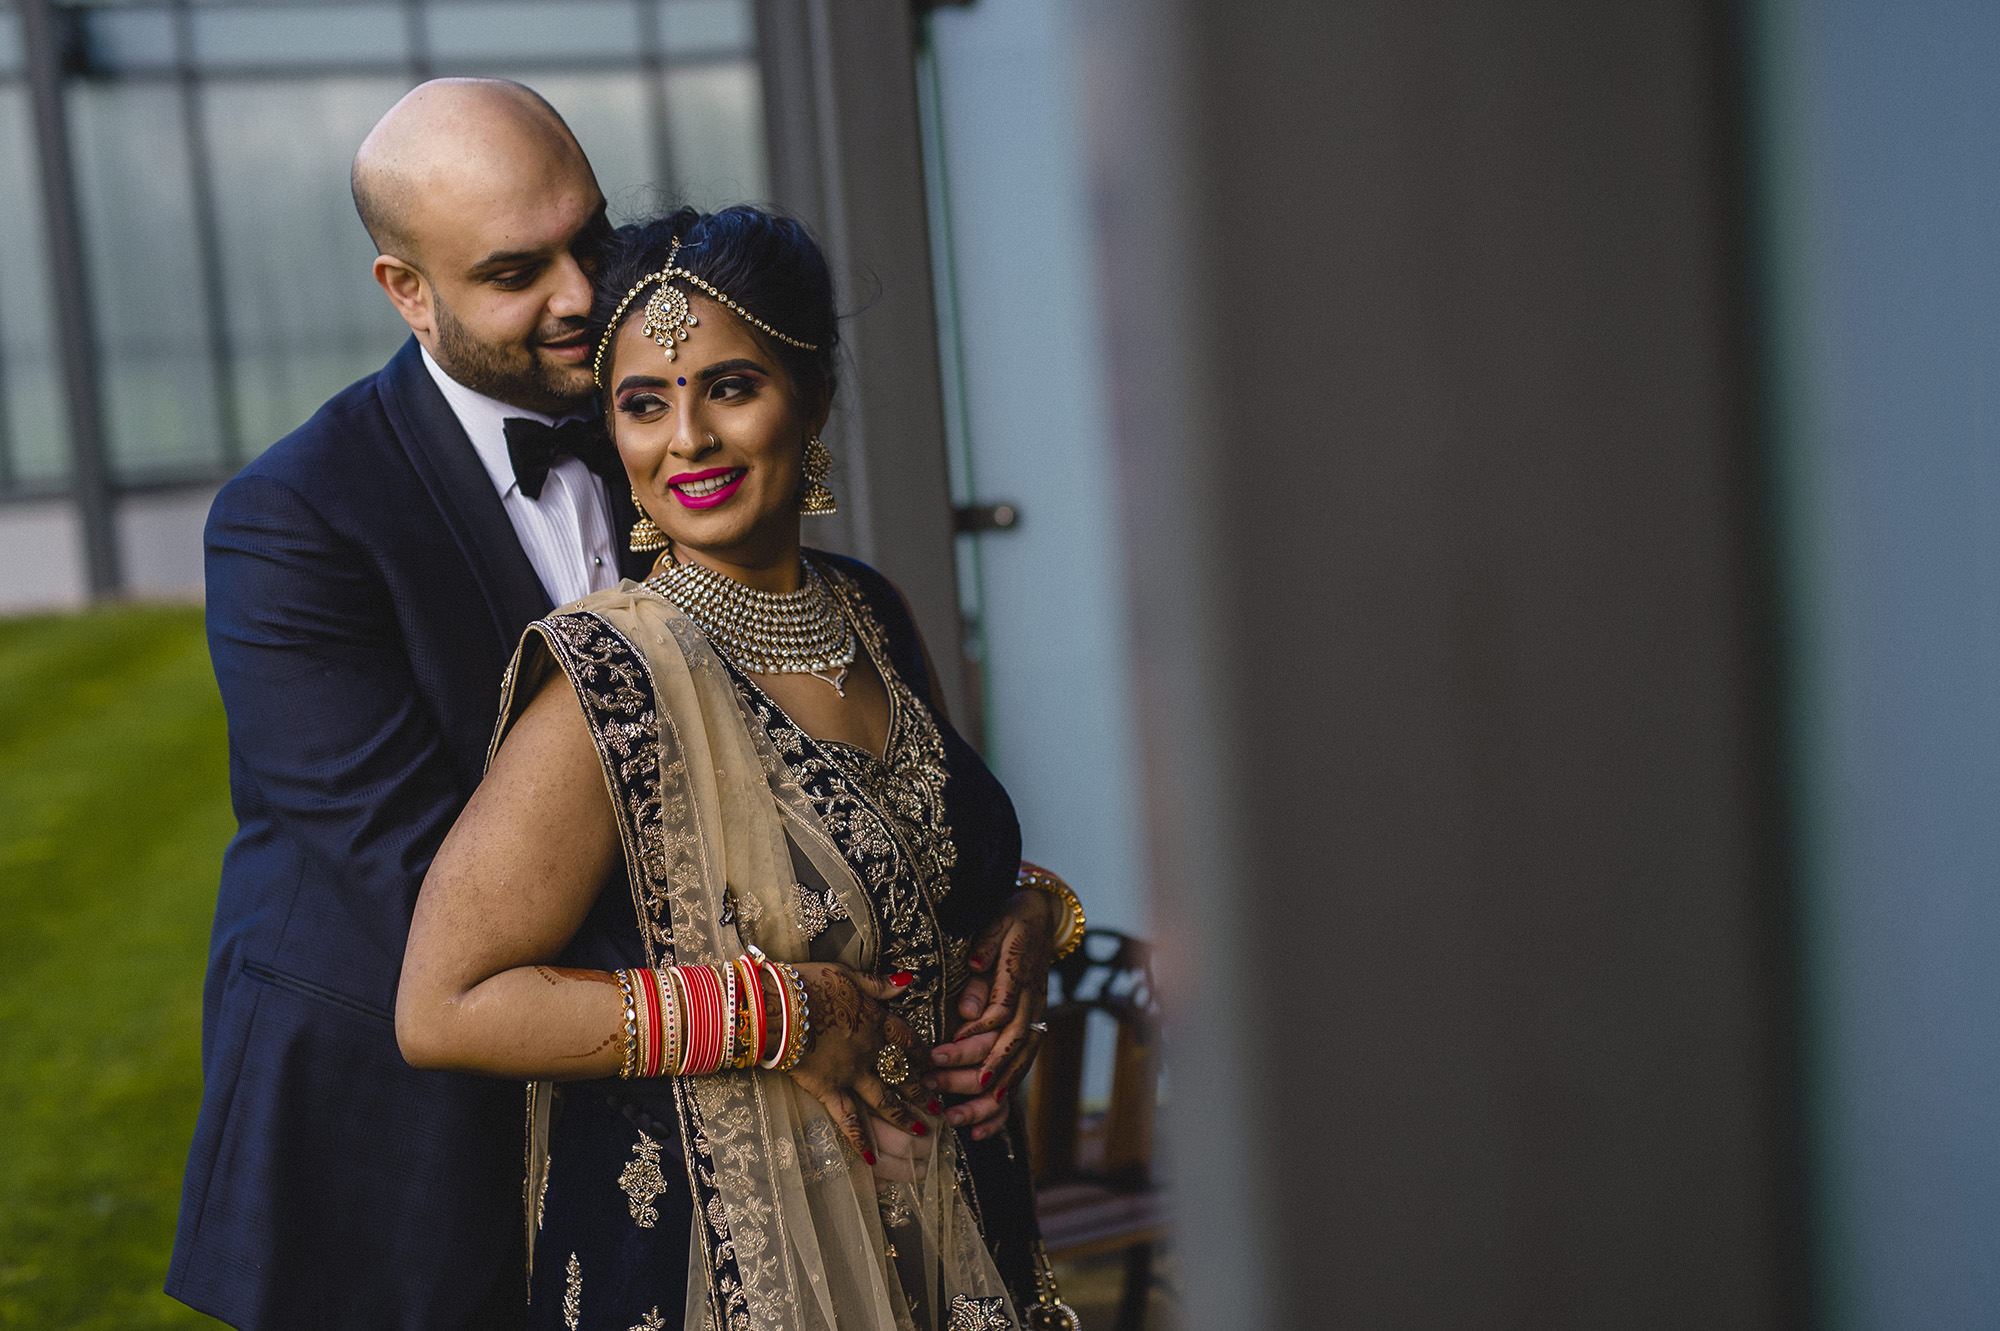 bride and groom portraits in their indian wedding outfits